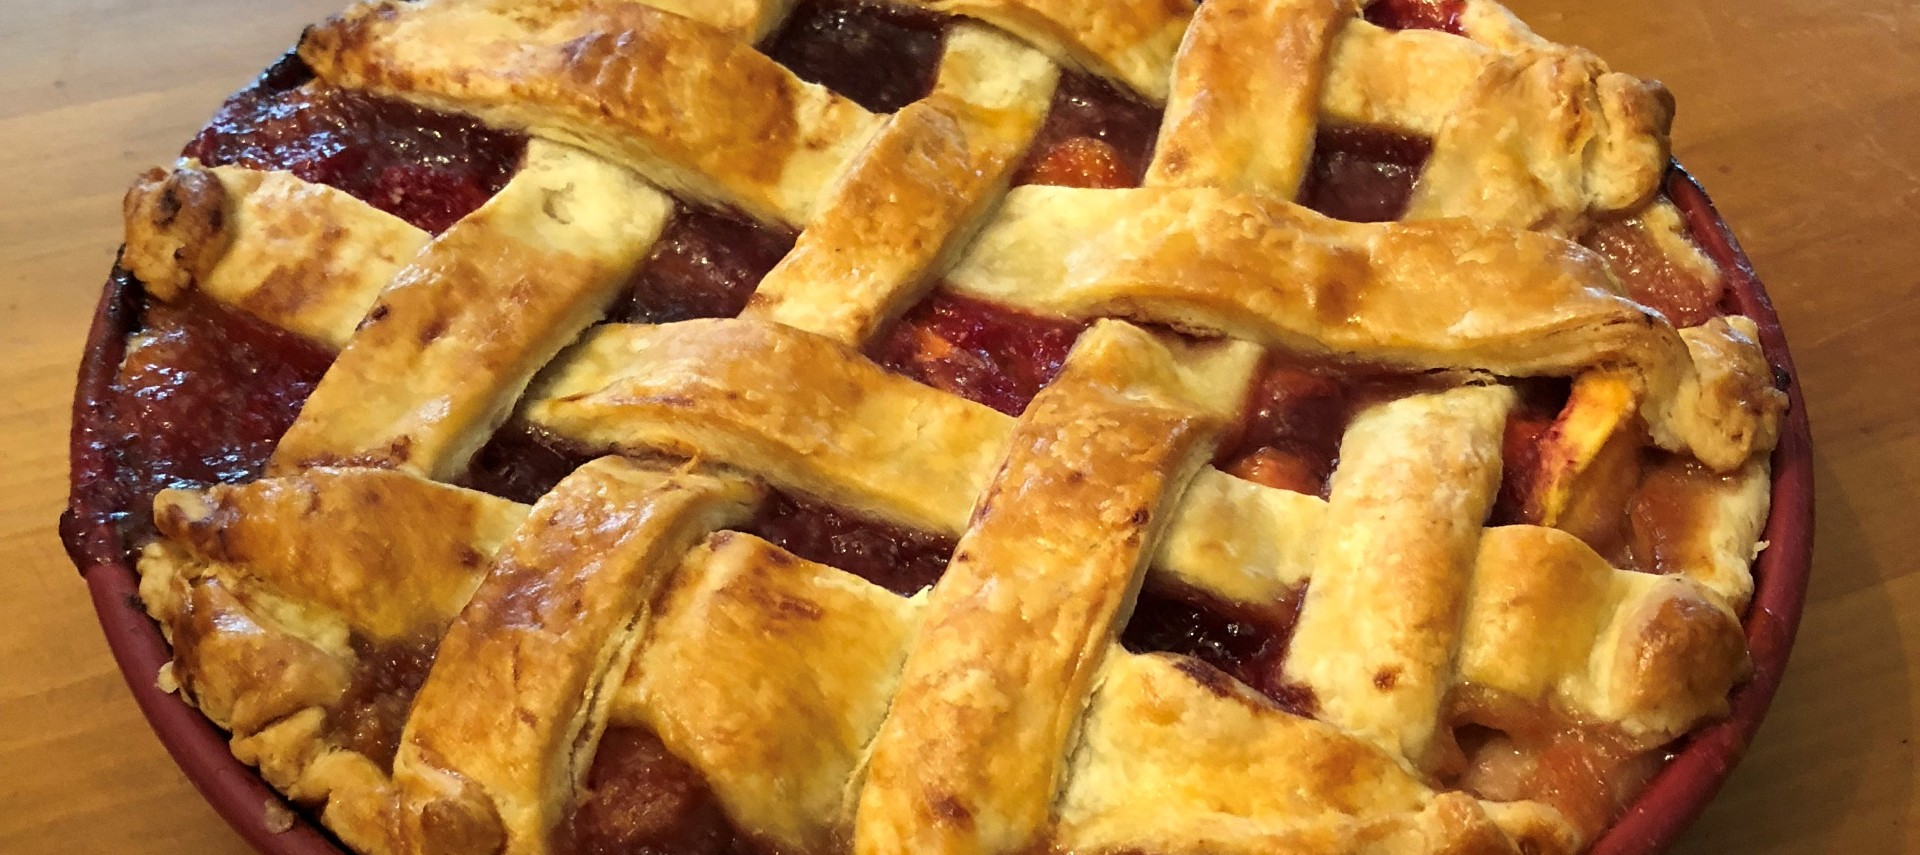 Cherry pie with a lattice crust in a red pie plate on a butcherblock counter.